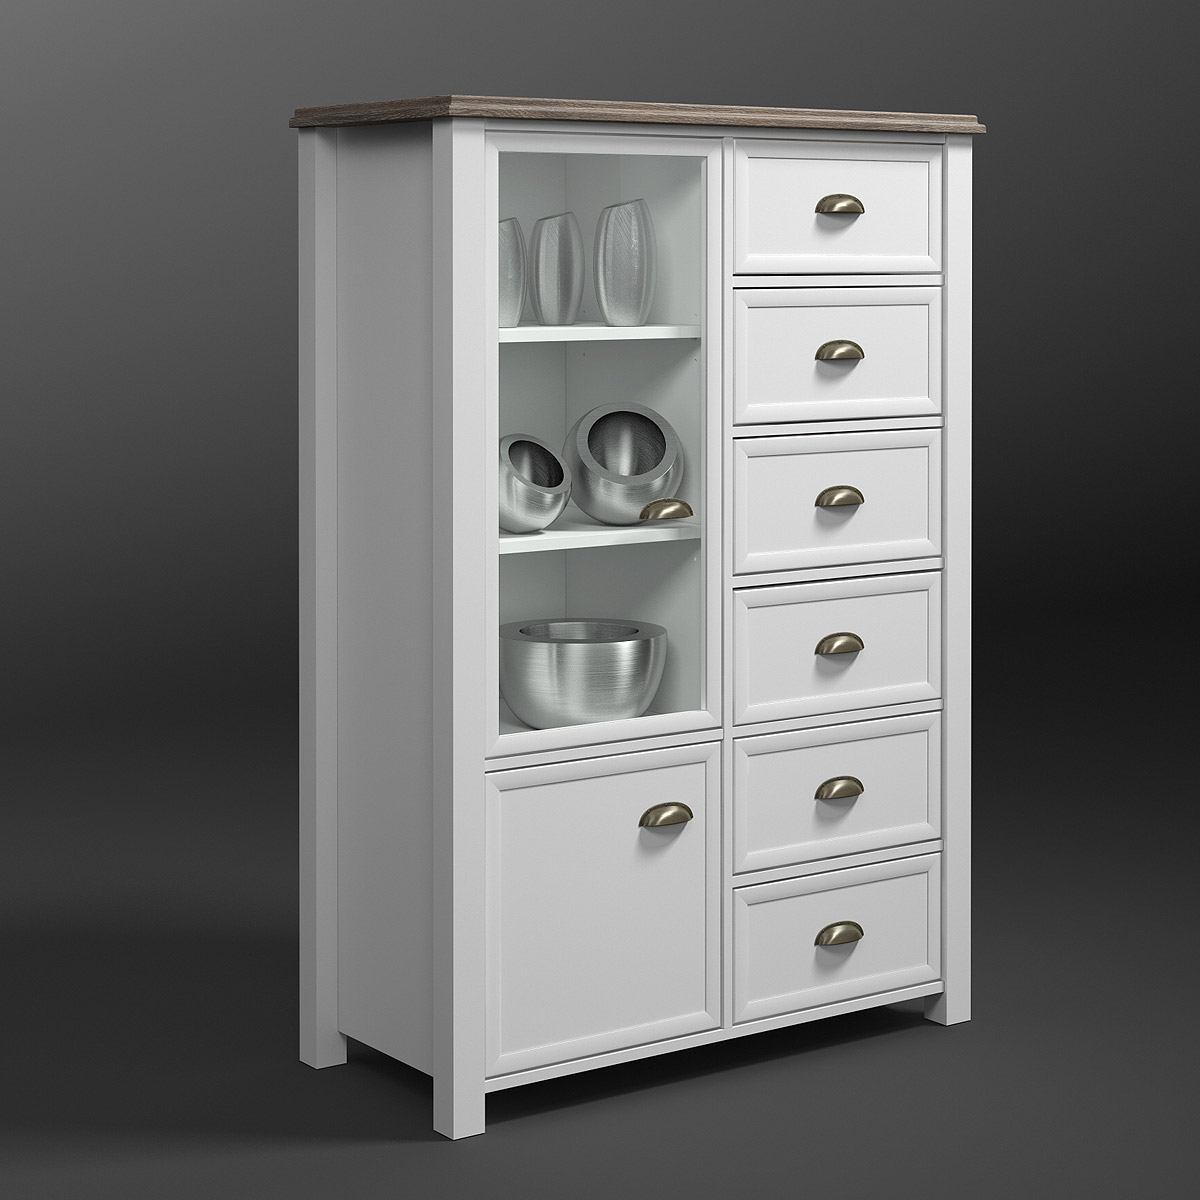 Kommode chateau vitrine highboard in wei und san remo for Kommode chateau